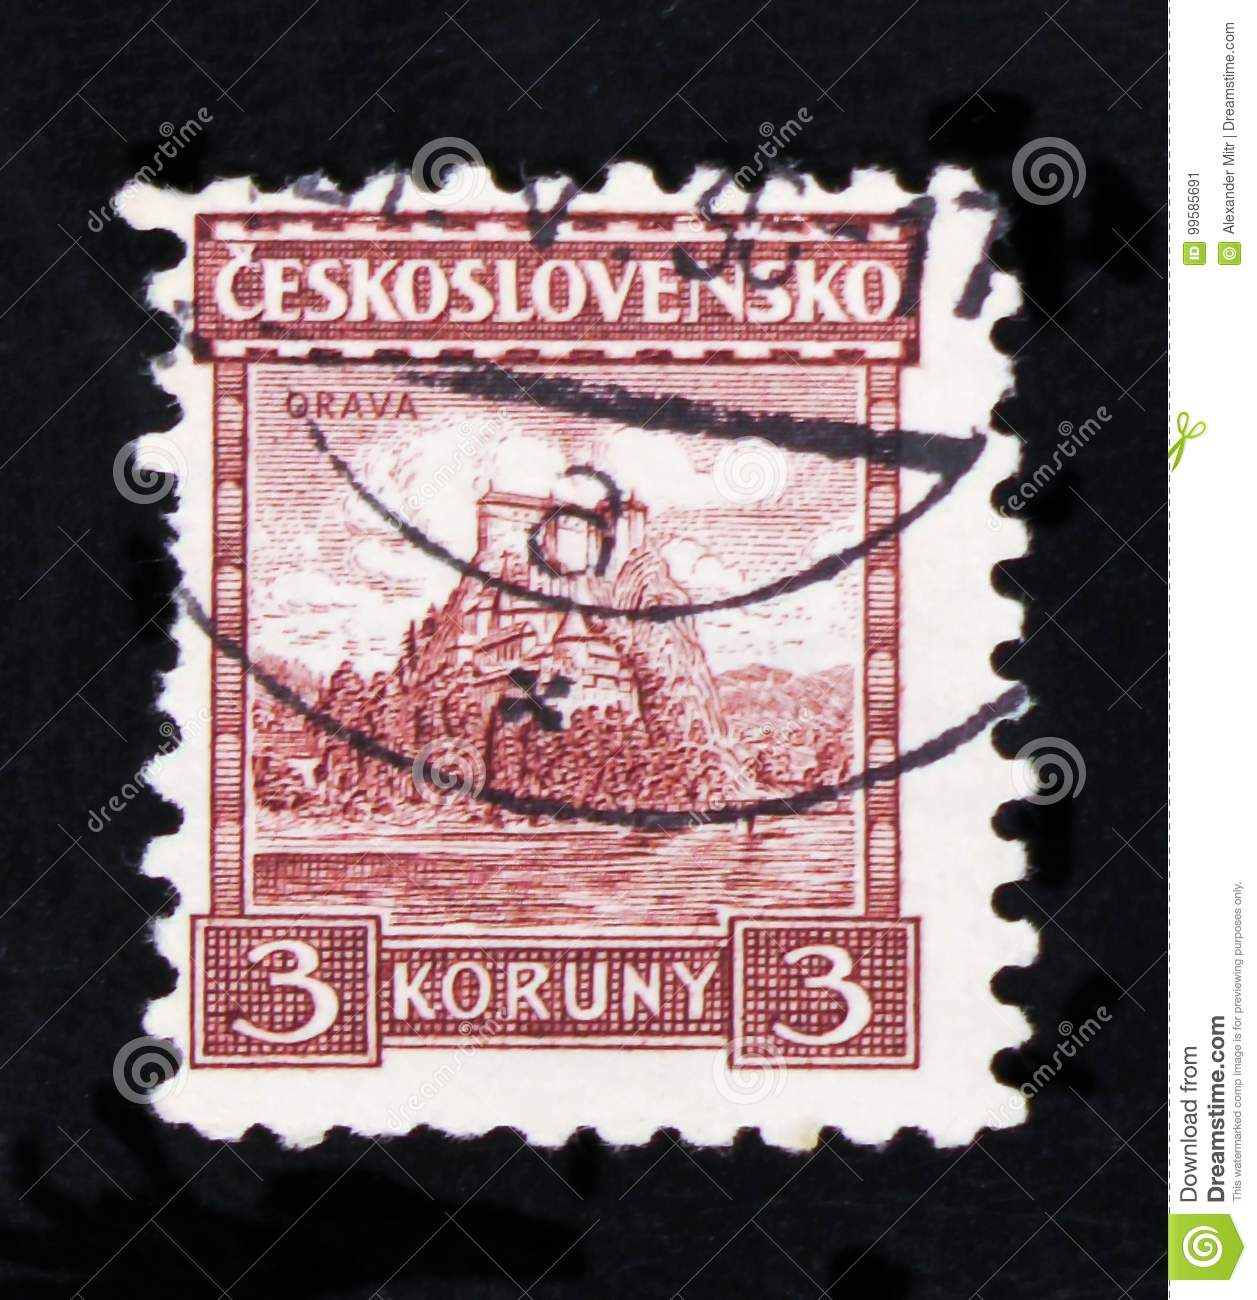 MOSCOW, RUSSIA - JUNE 20, 2017: A stamp printed in Czechoslovakia shows shows Orava castle, circa 1931